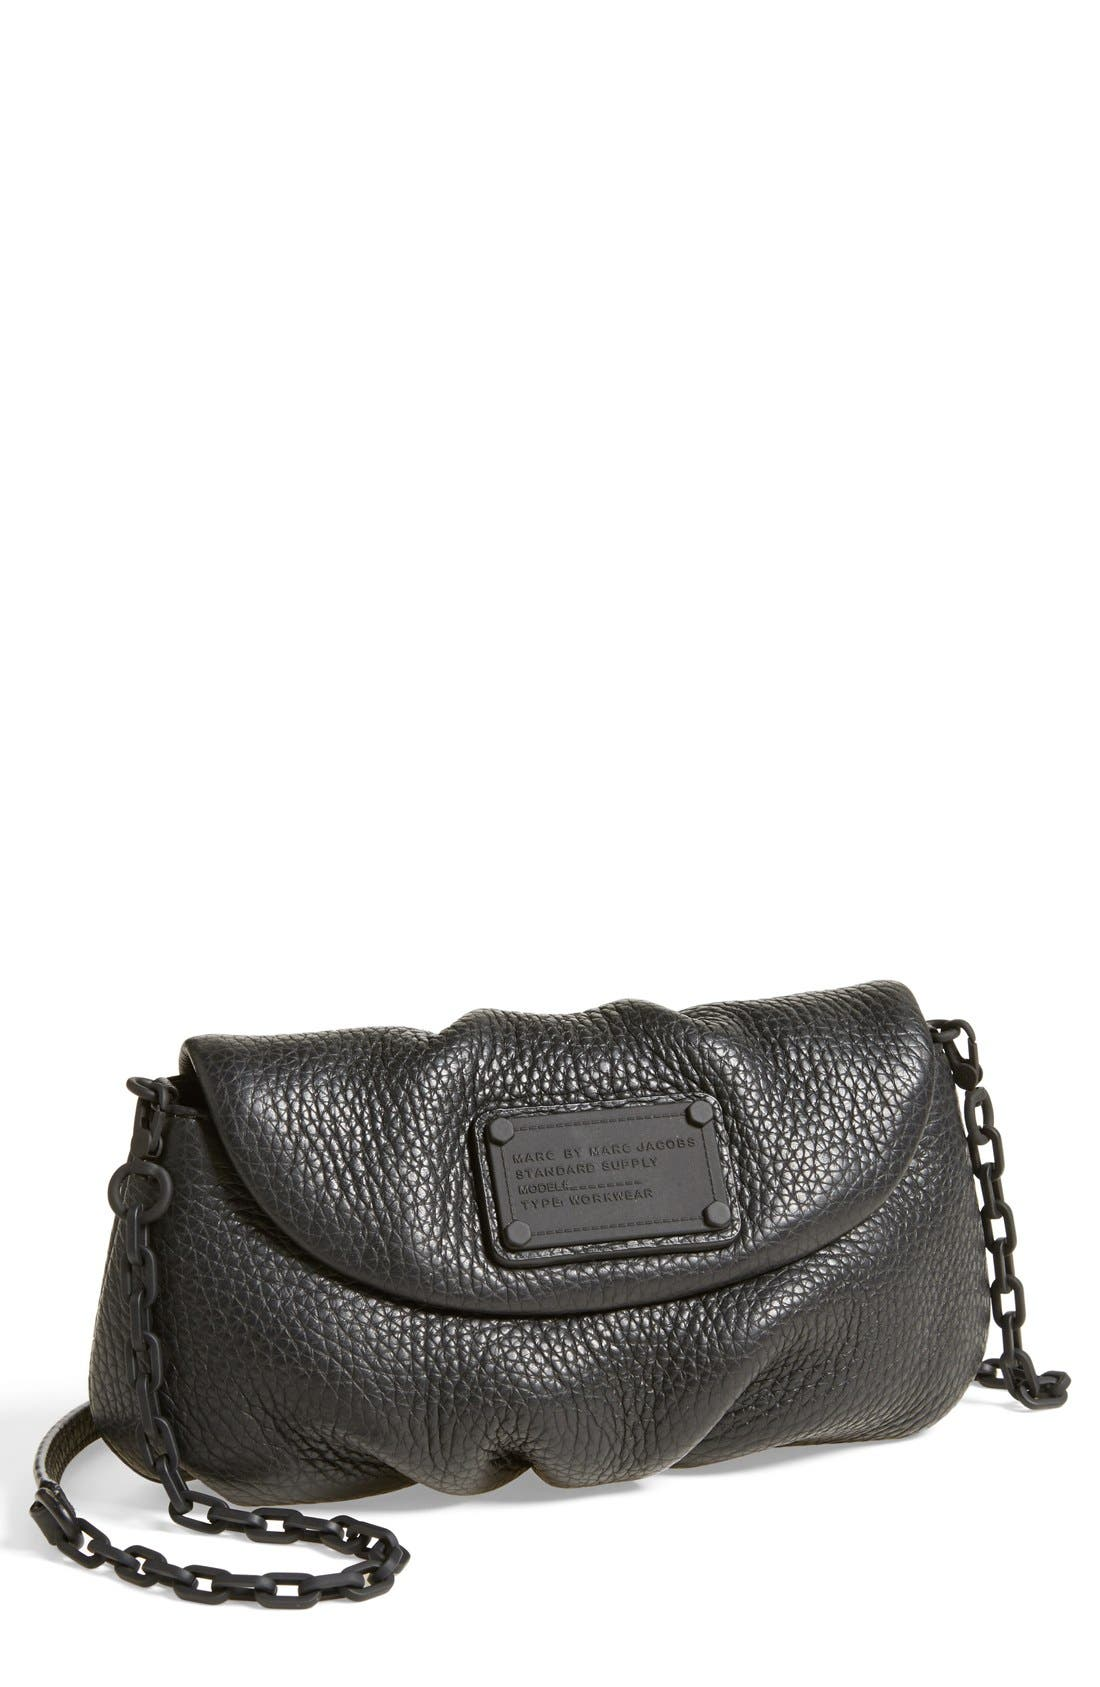 Alternate Image 1 Selected - MARC BY MARC JACOBS 'Electro Q - Karlie' Leather Crossbody Bag